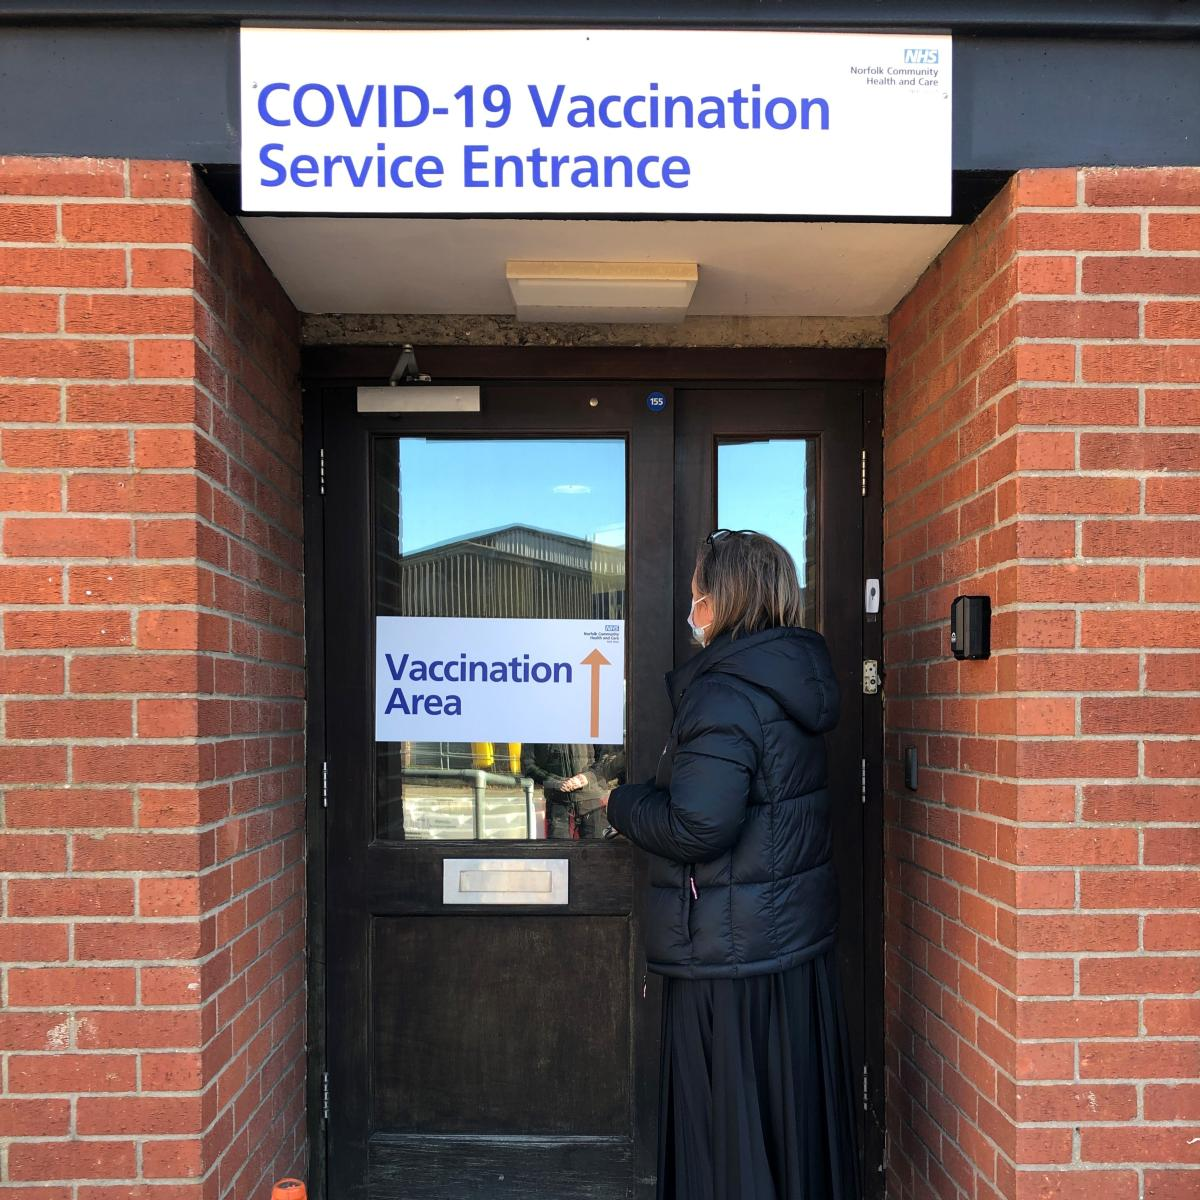 To the vaccination service entrance…